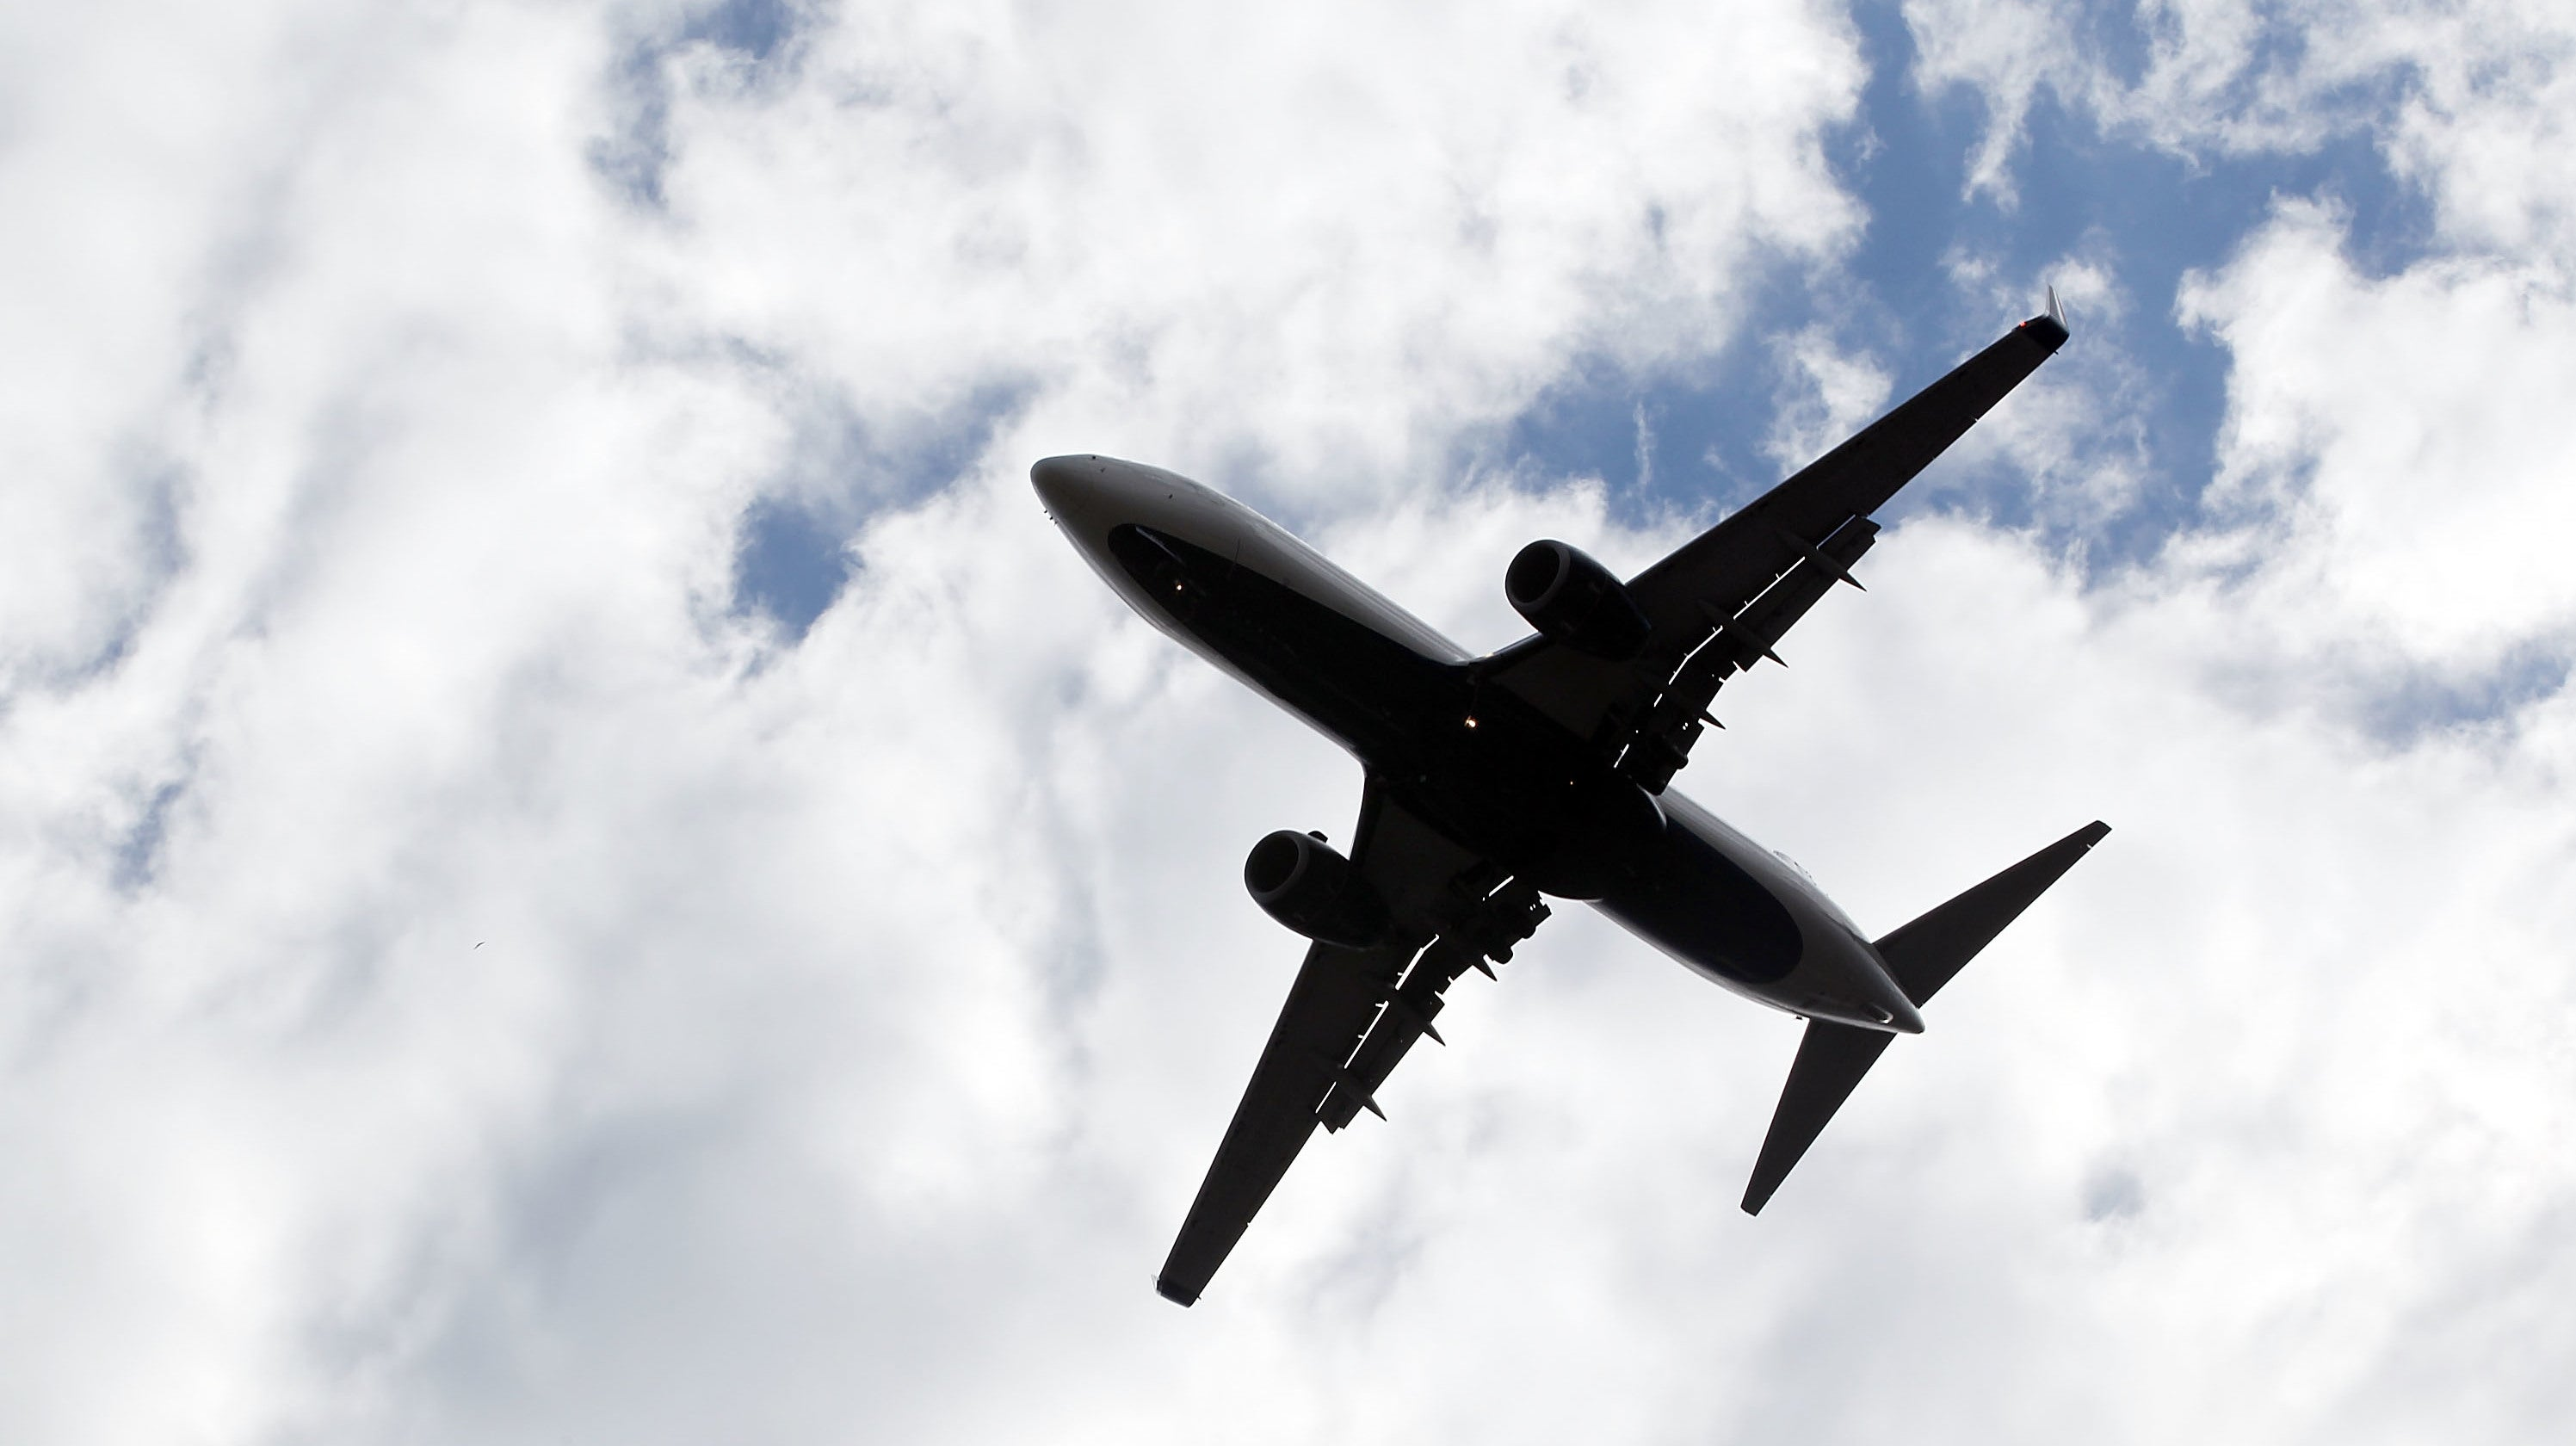 US Government Researchers Say It's Only A 'Matter Of Time' Until A Commercial Airline Is Hacked